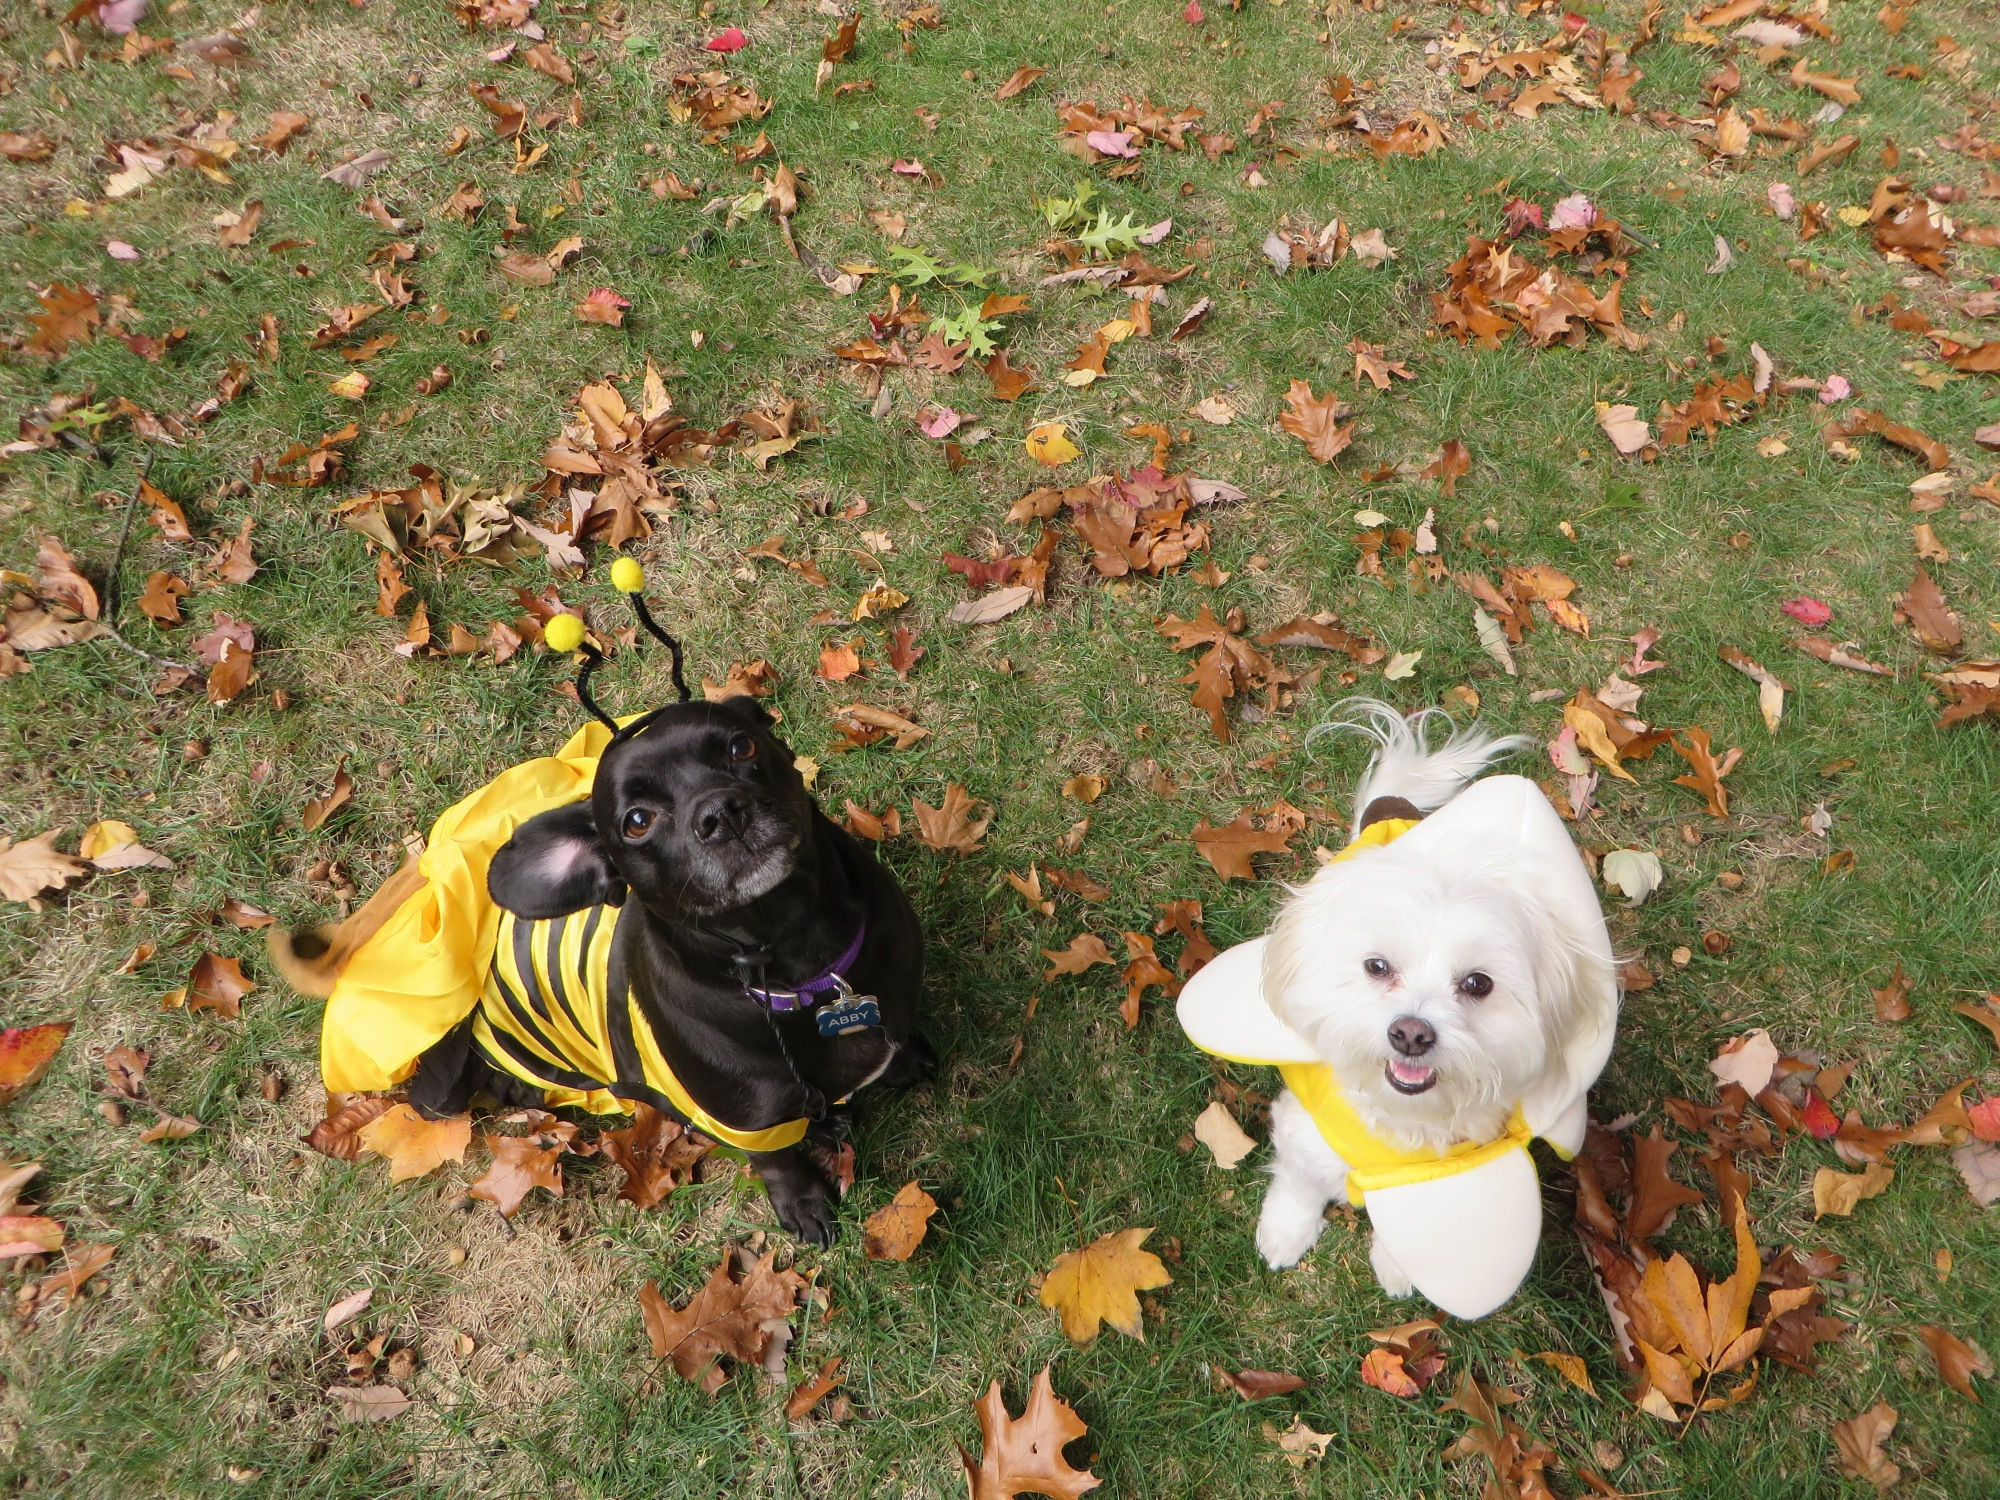 Buzz buzz, Abby is a bee